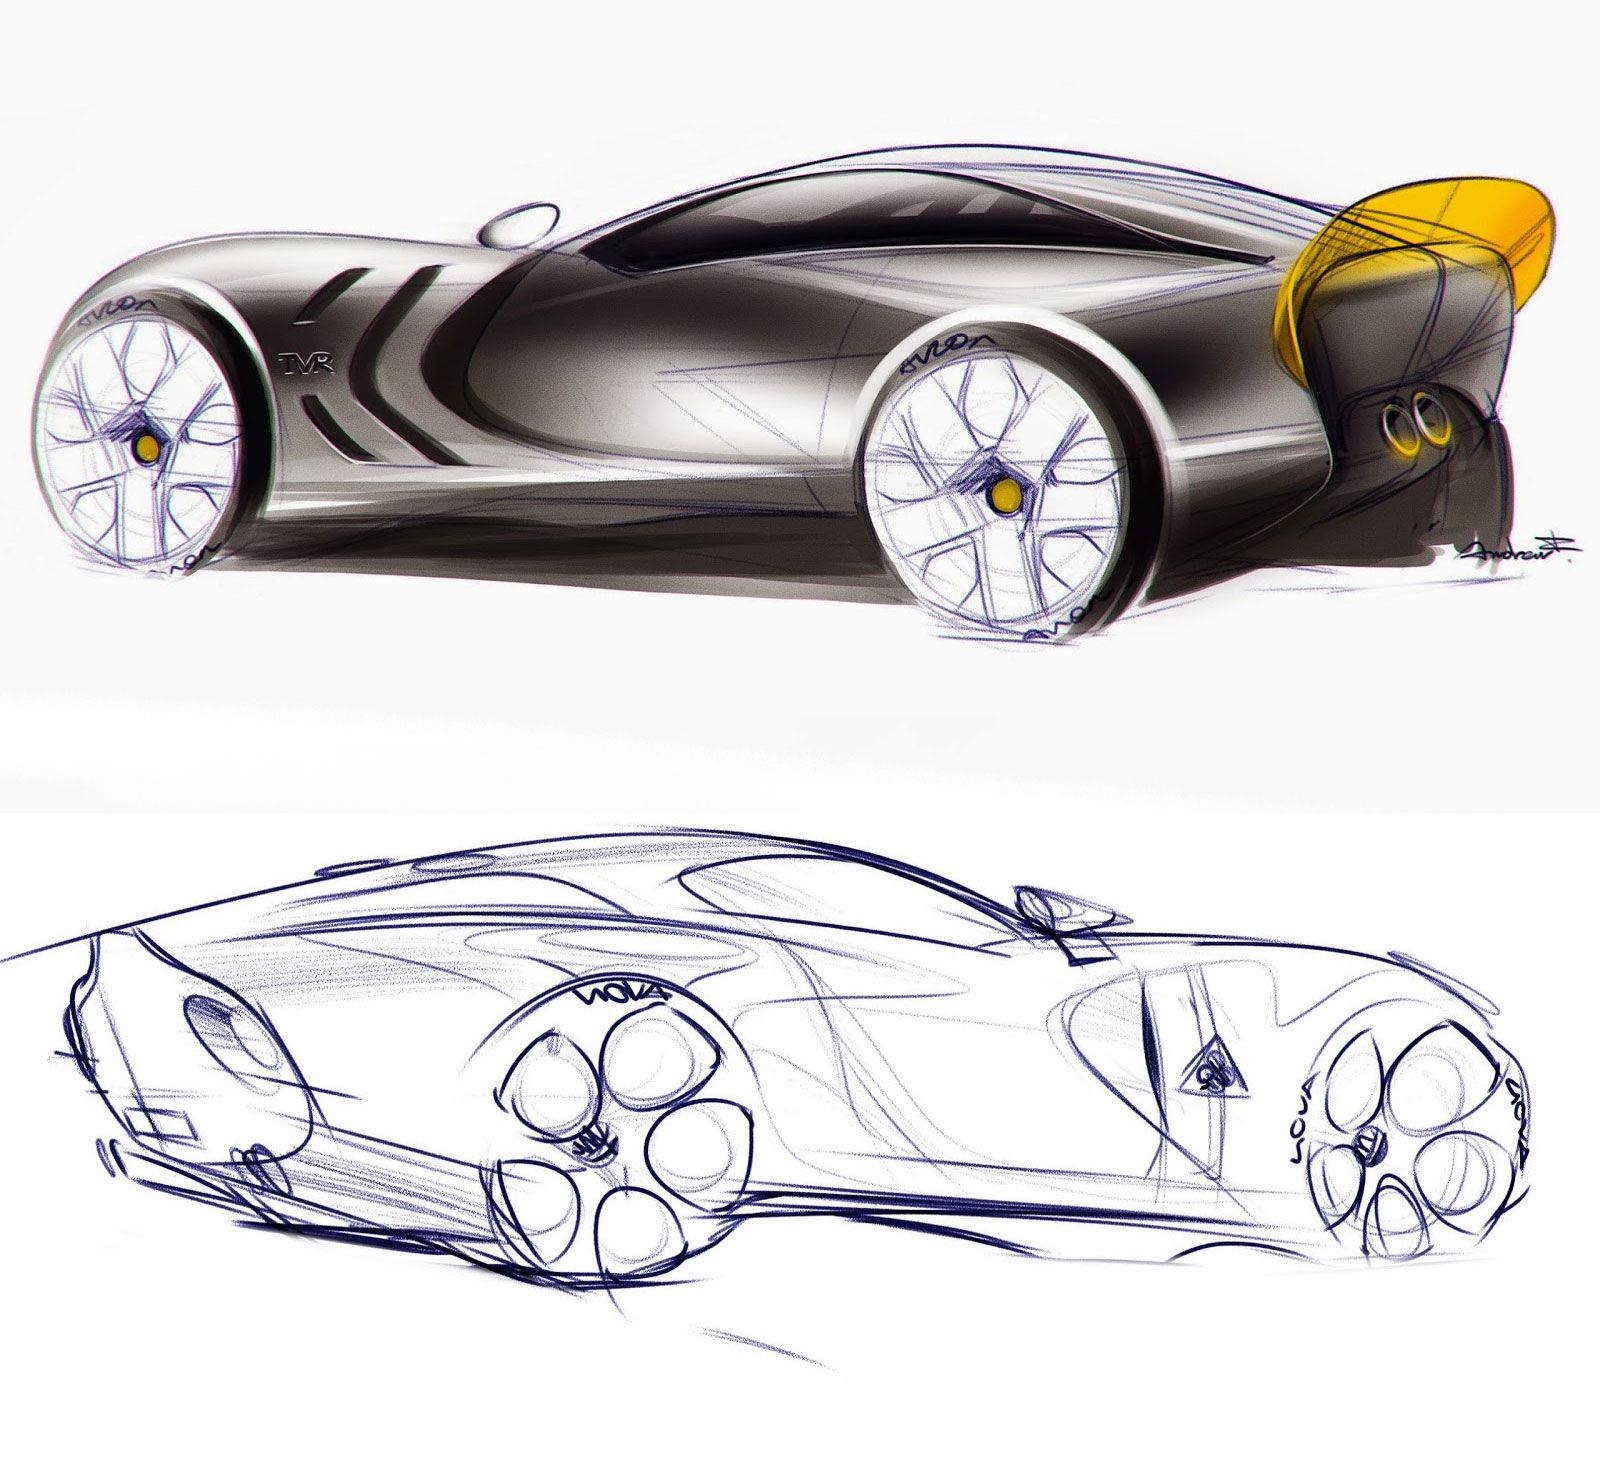 TVR And Alfa Romeo Concept Design Sketches By Andrew F